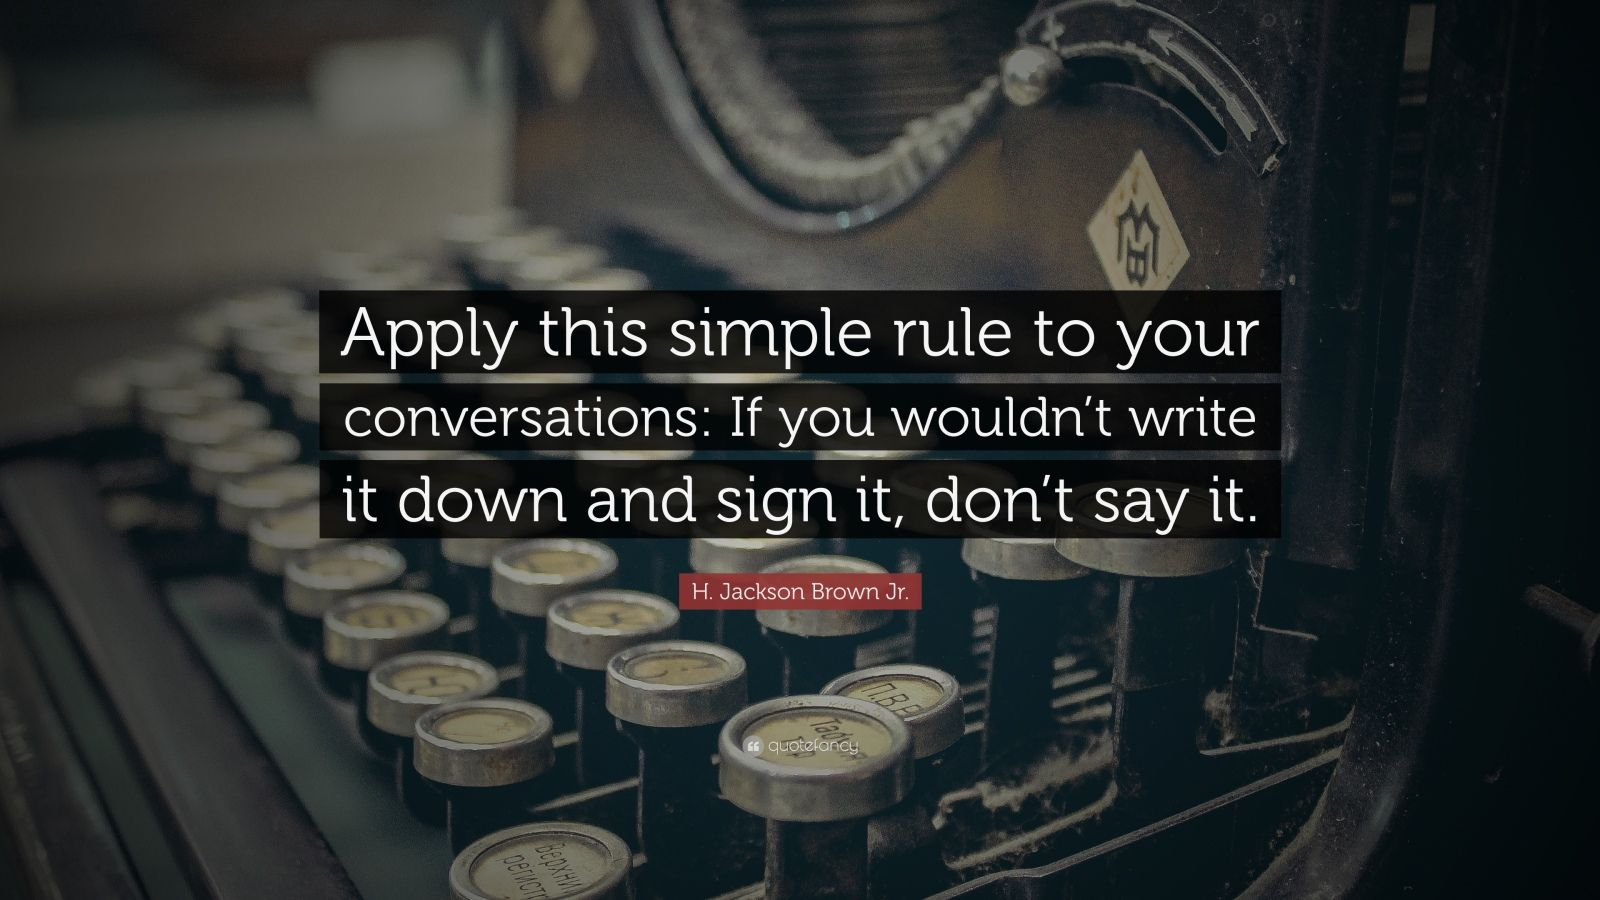 """H. Jackson Brown Jr. Quote: """"Apply this simple rule to your conversations: If you wouldn't write it down and sign it, don't say it."""""""